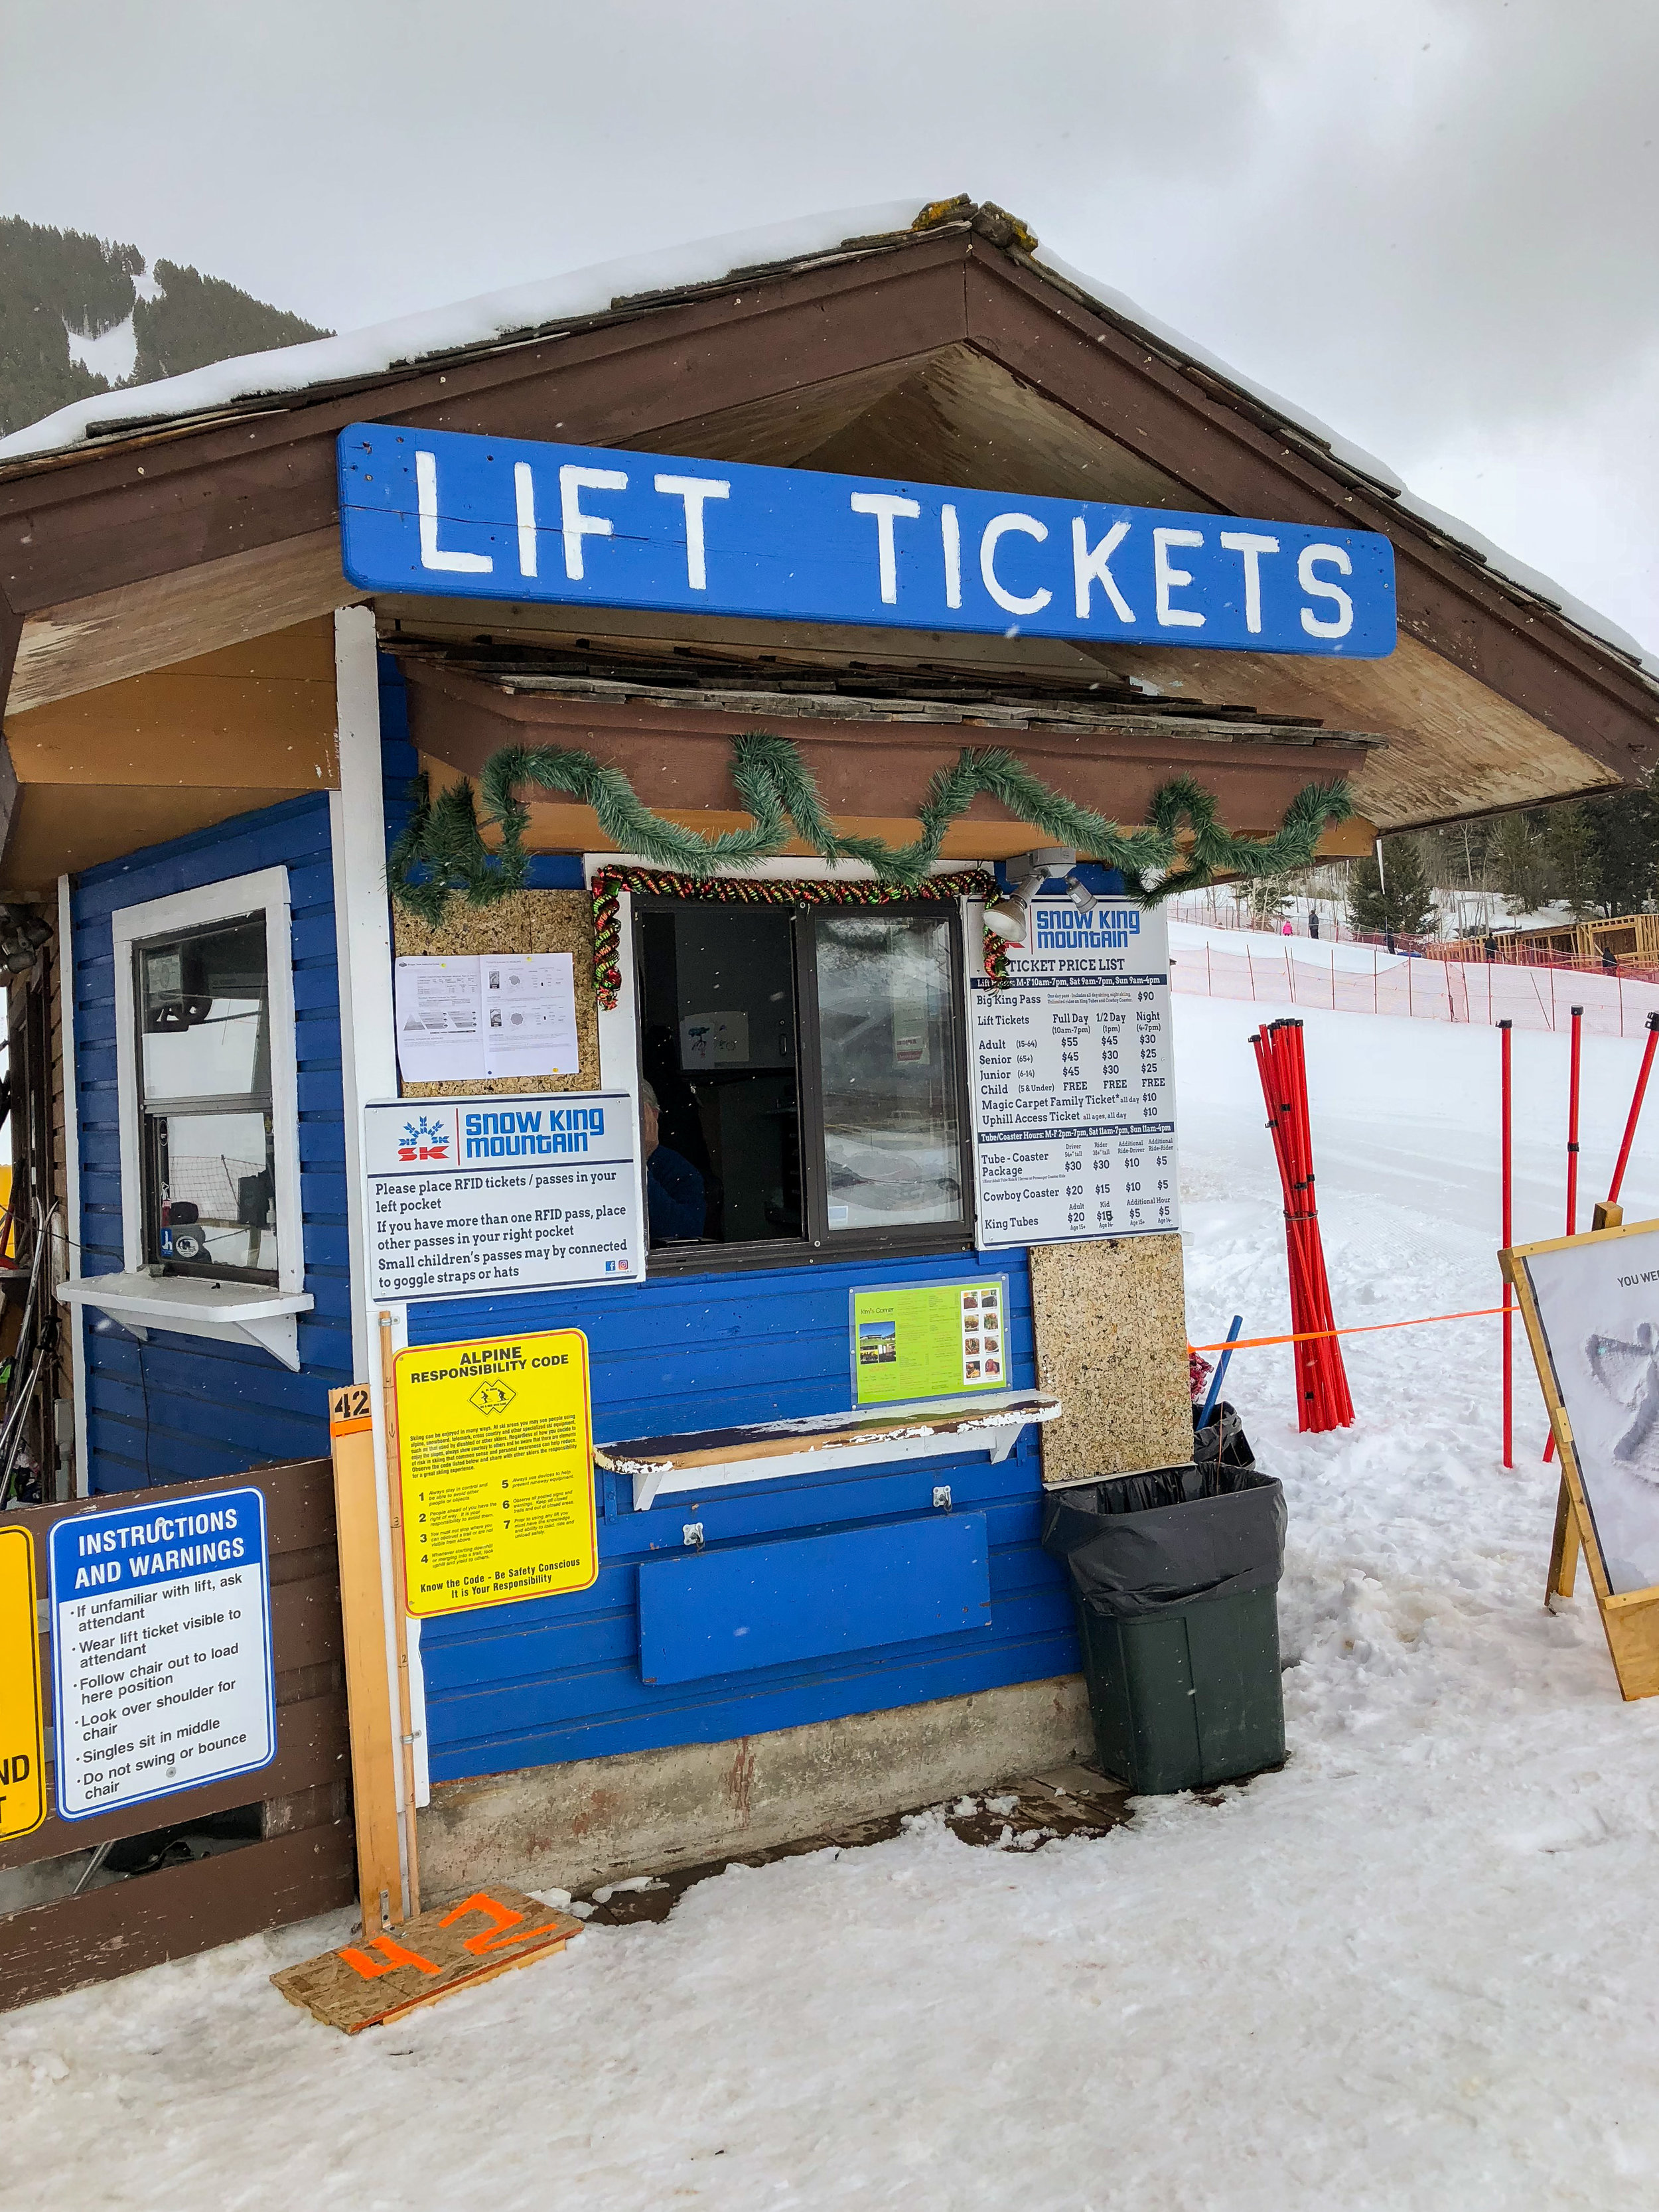 The ticket booth at Snow King Mountain